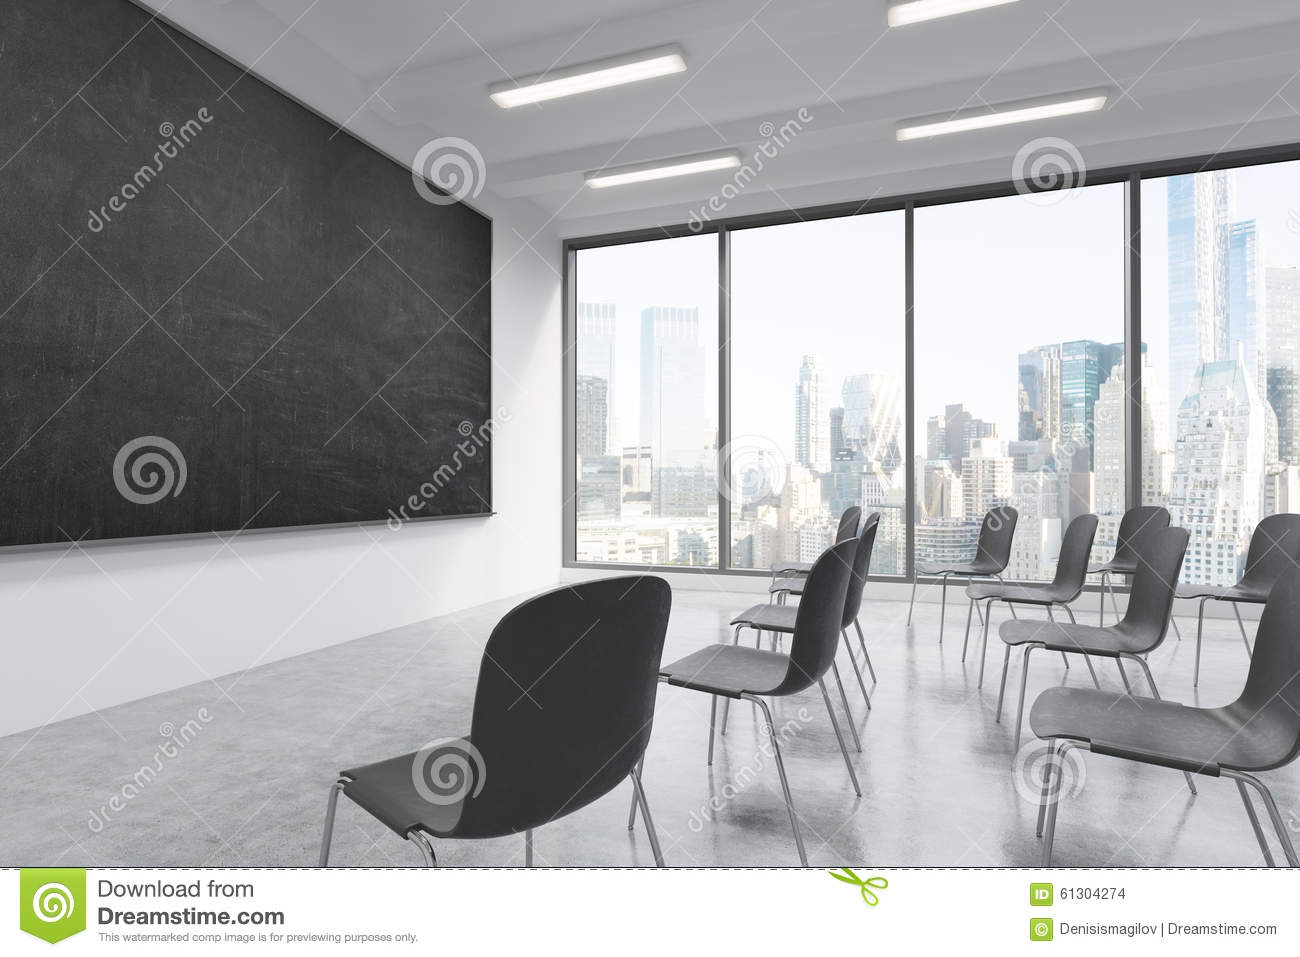 A Classroom Or Presentation Room In A Modern University Or Fancy Office.  Black Chairs,